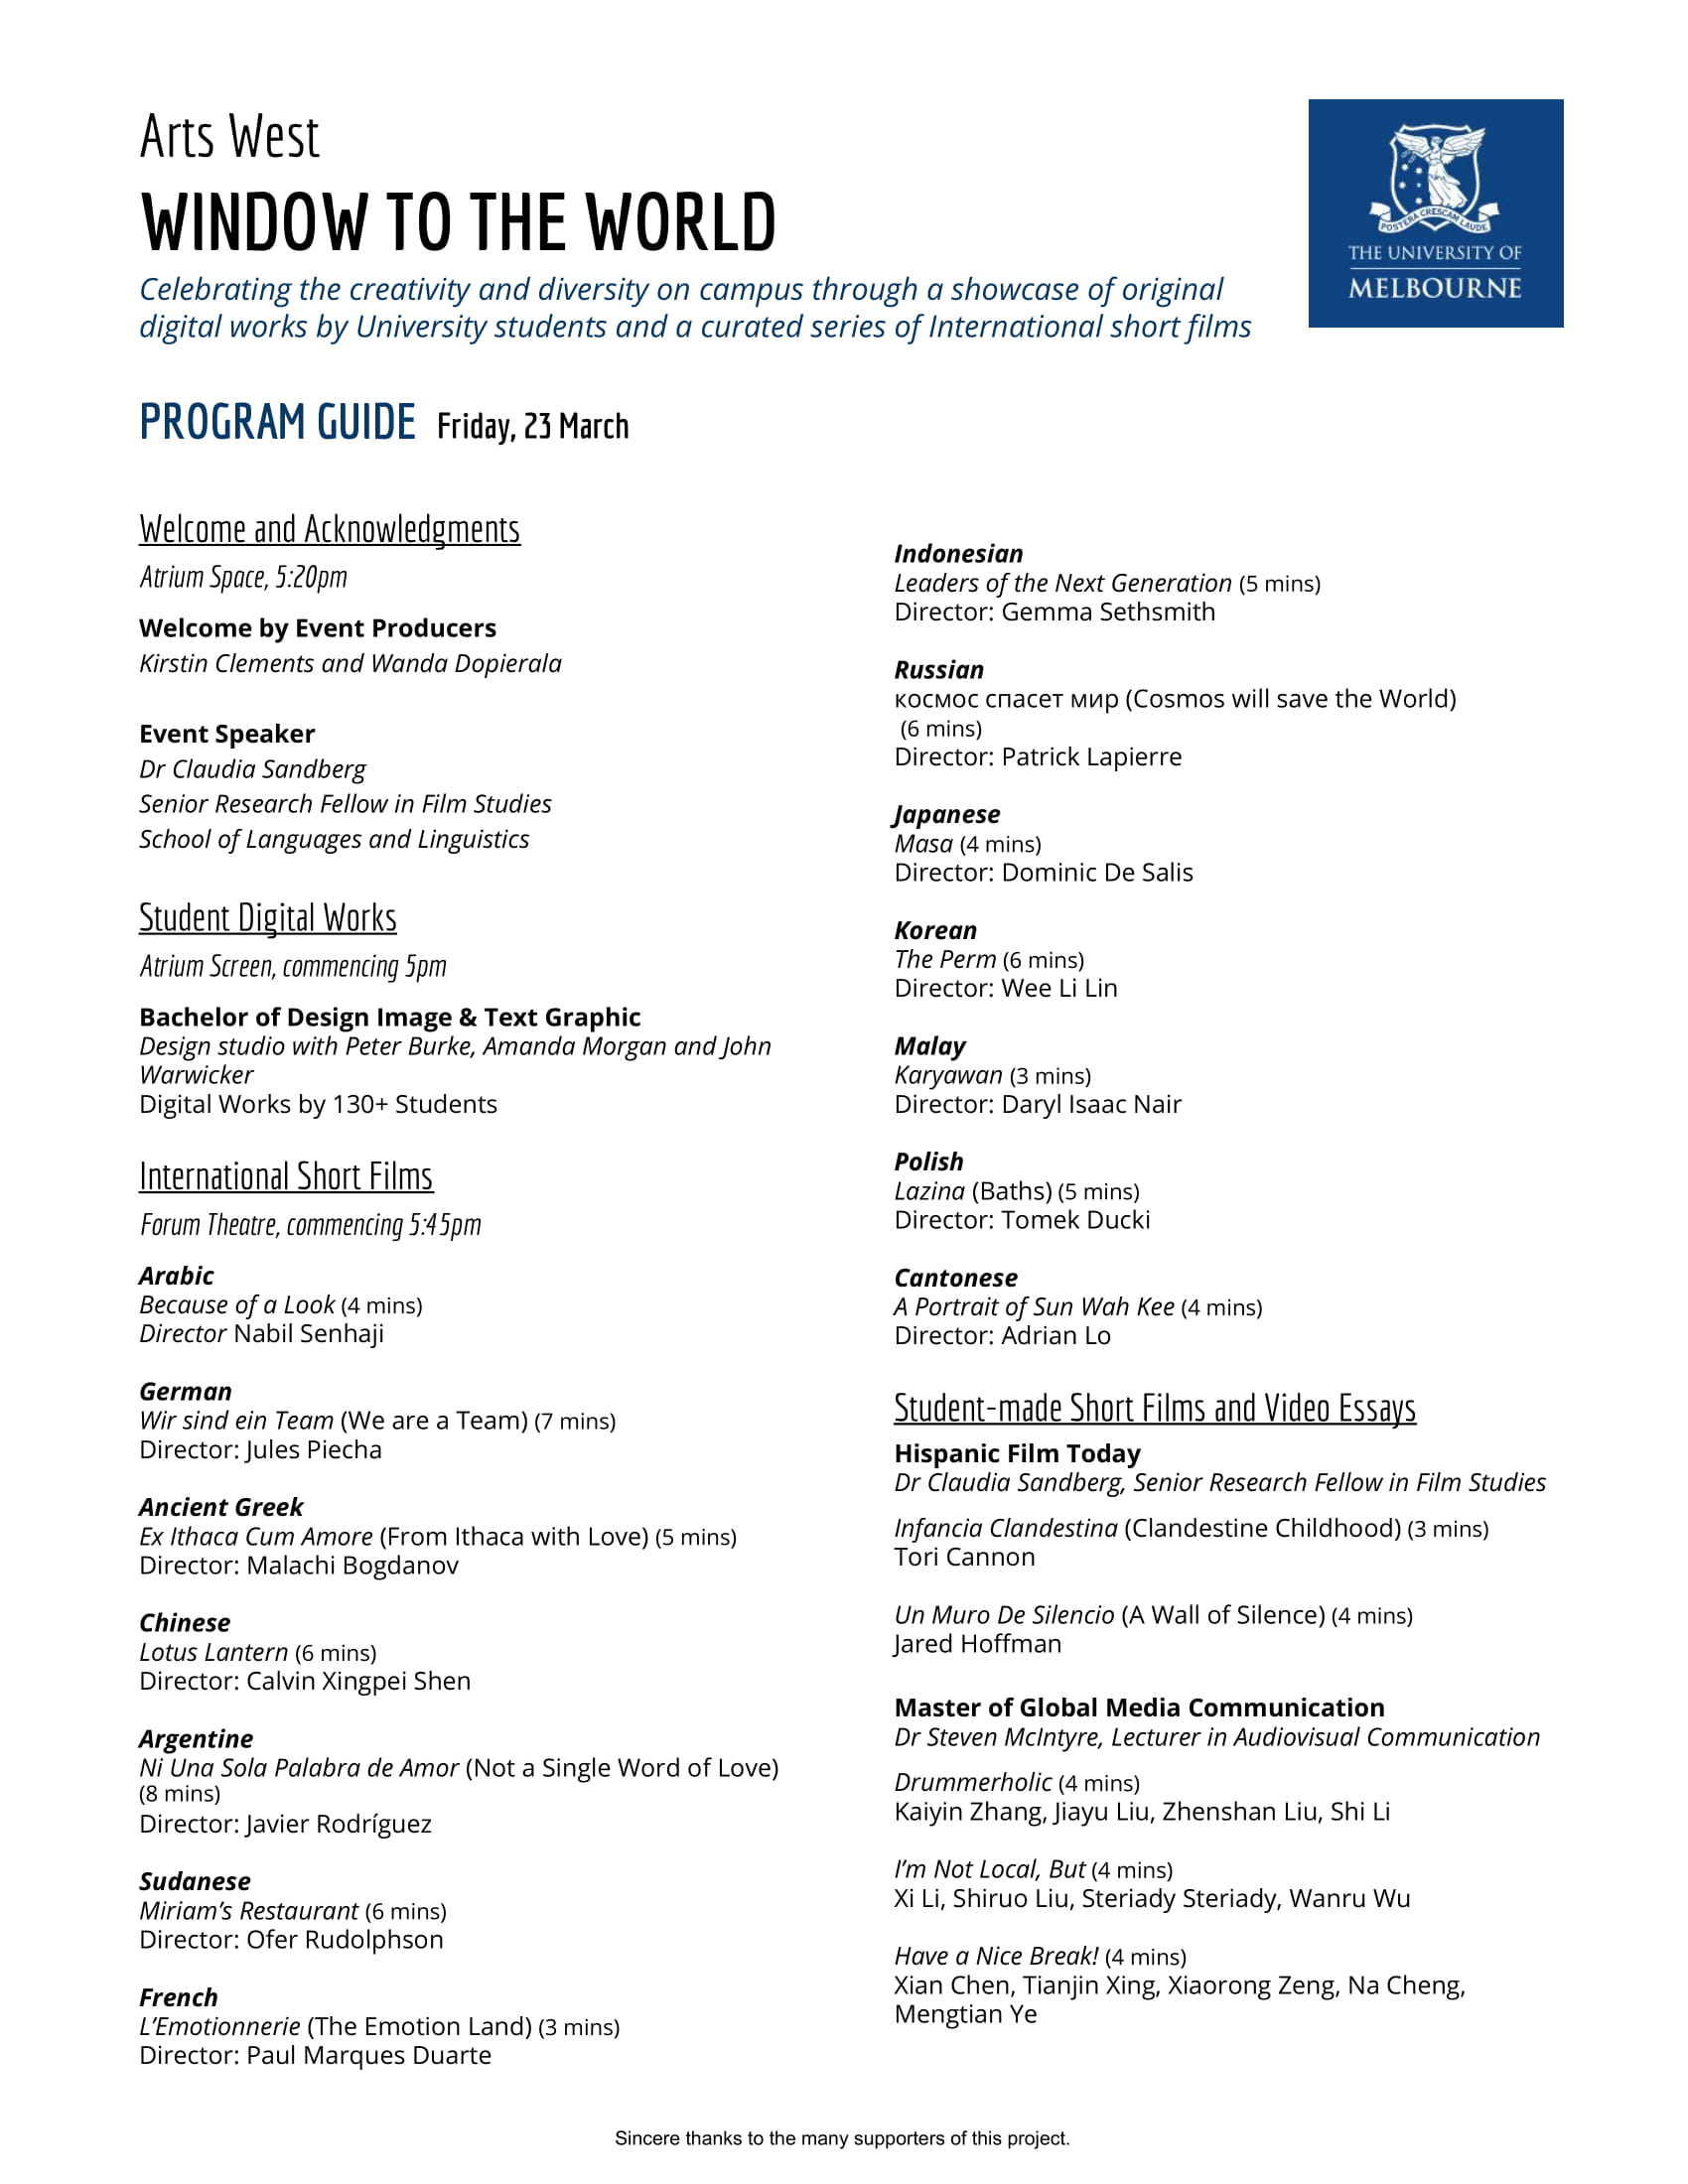 WTTW Event Program Guide